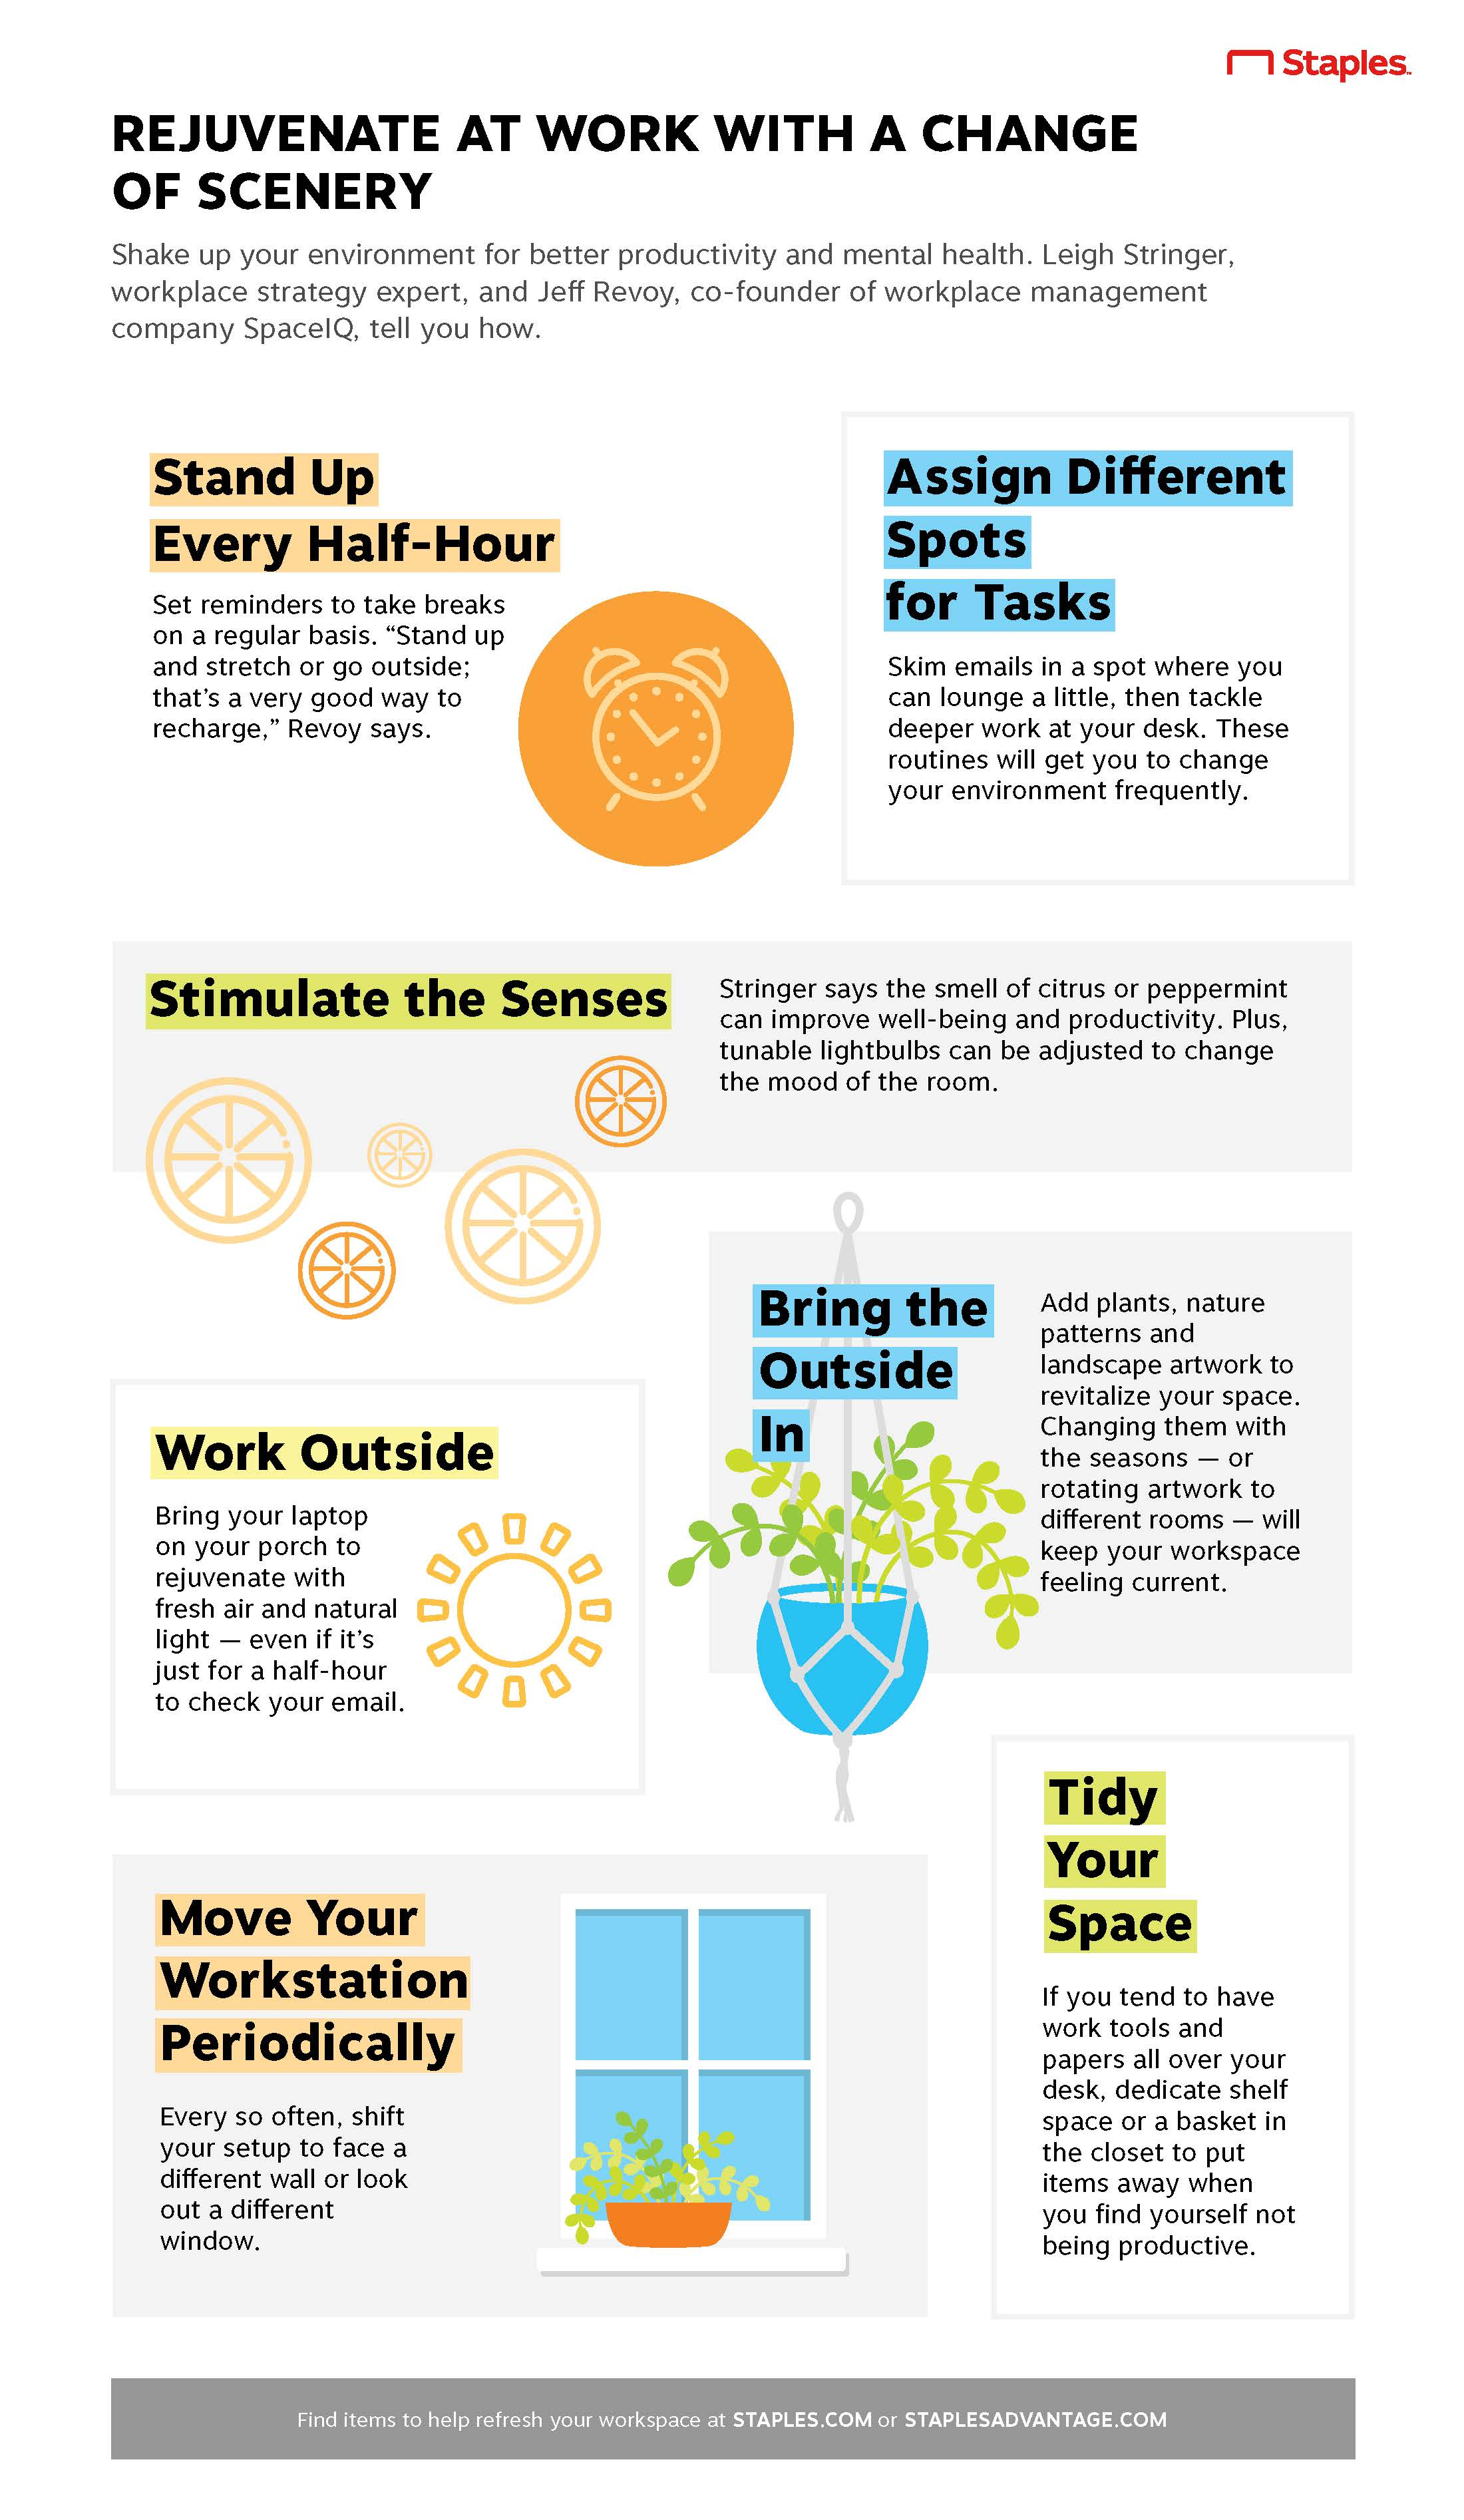 Rejuvenate at Work With a Change of Scenery